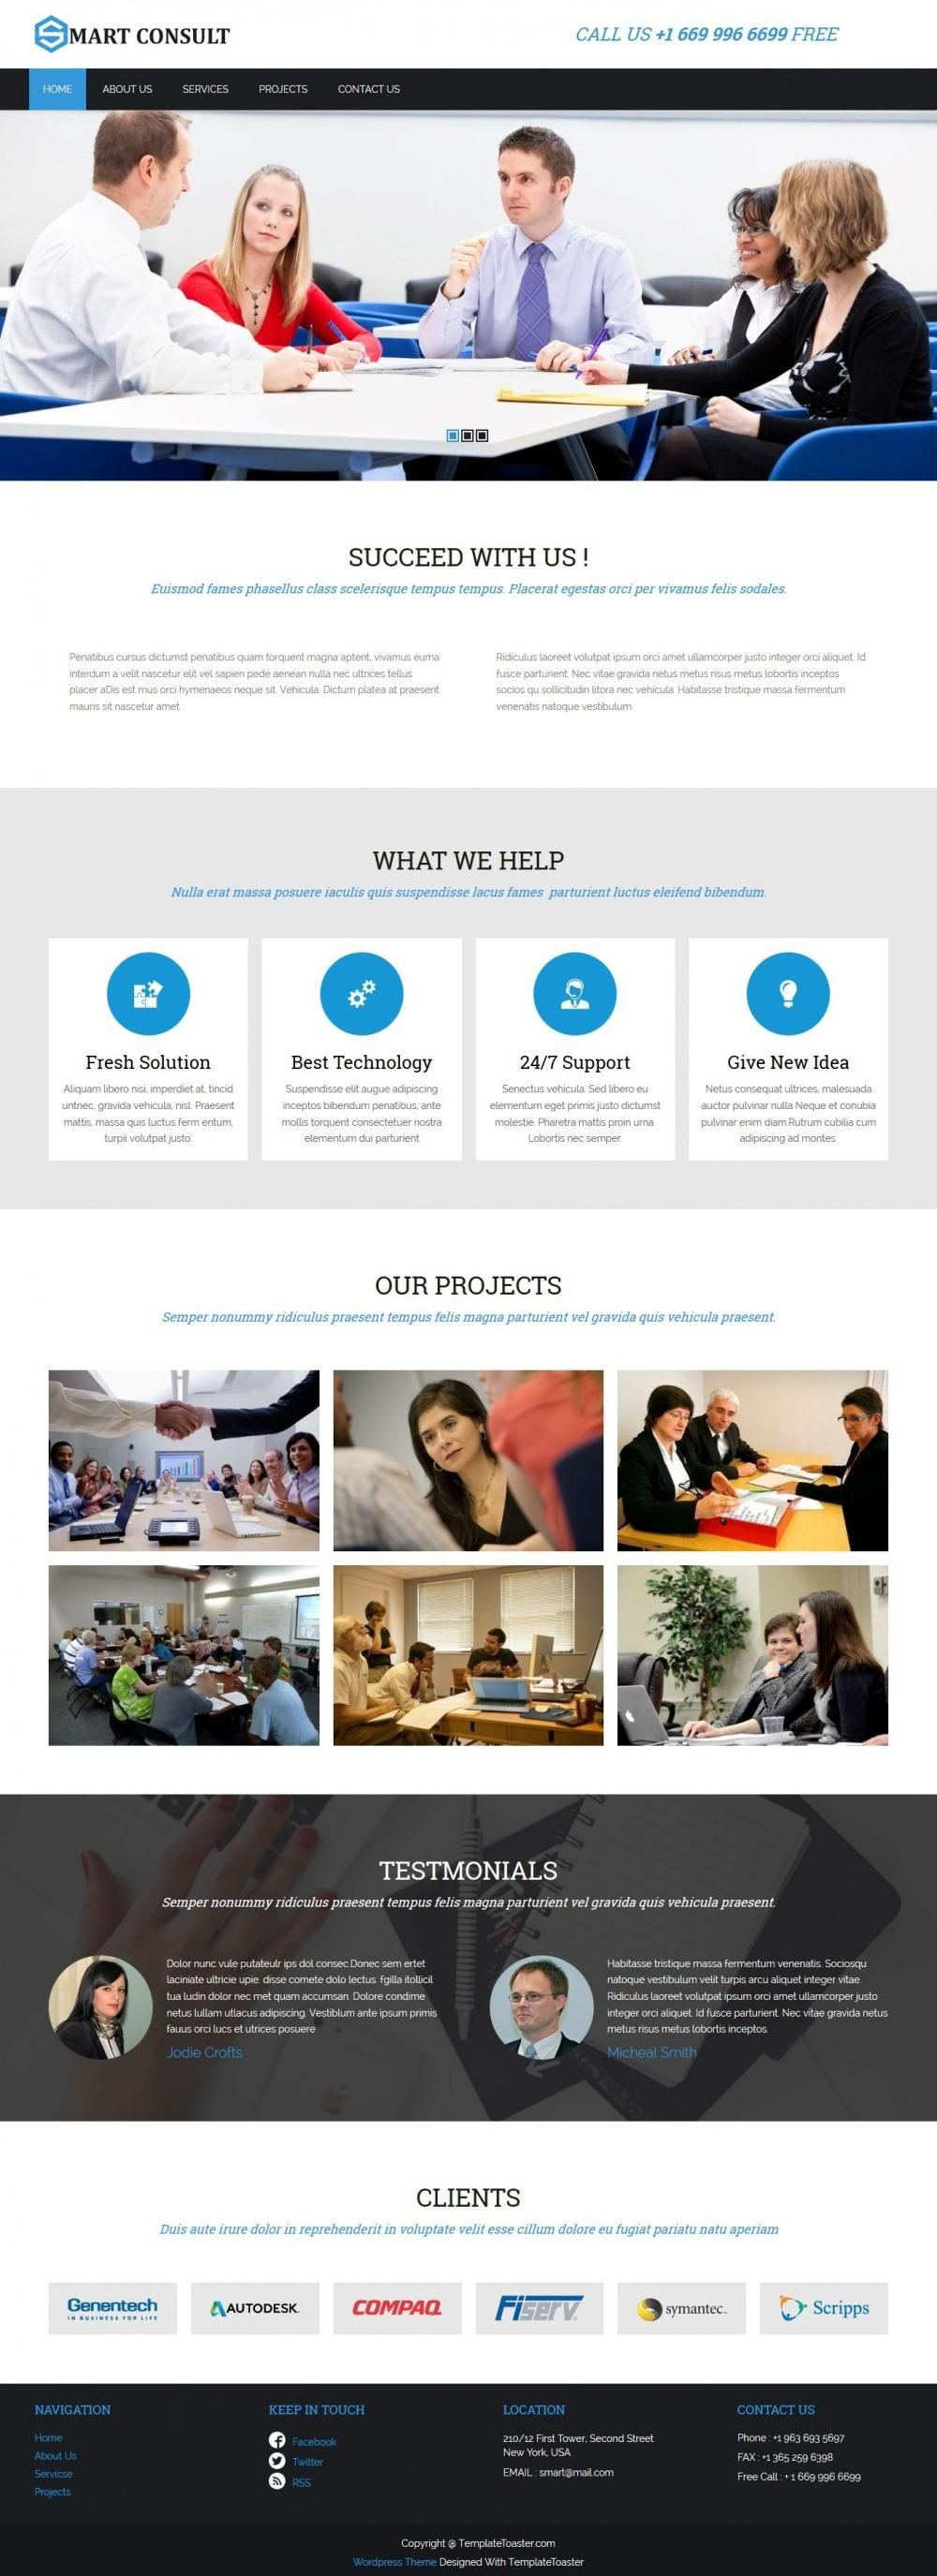 Smart Consultant - Business/Marketing Services Free WordPress Theme